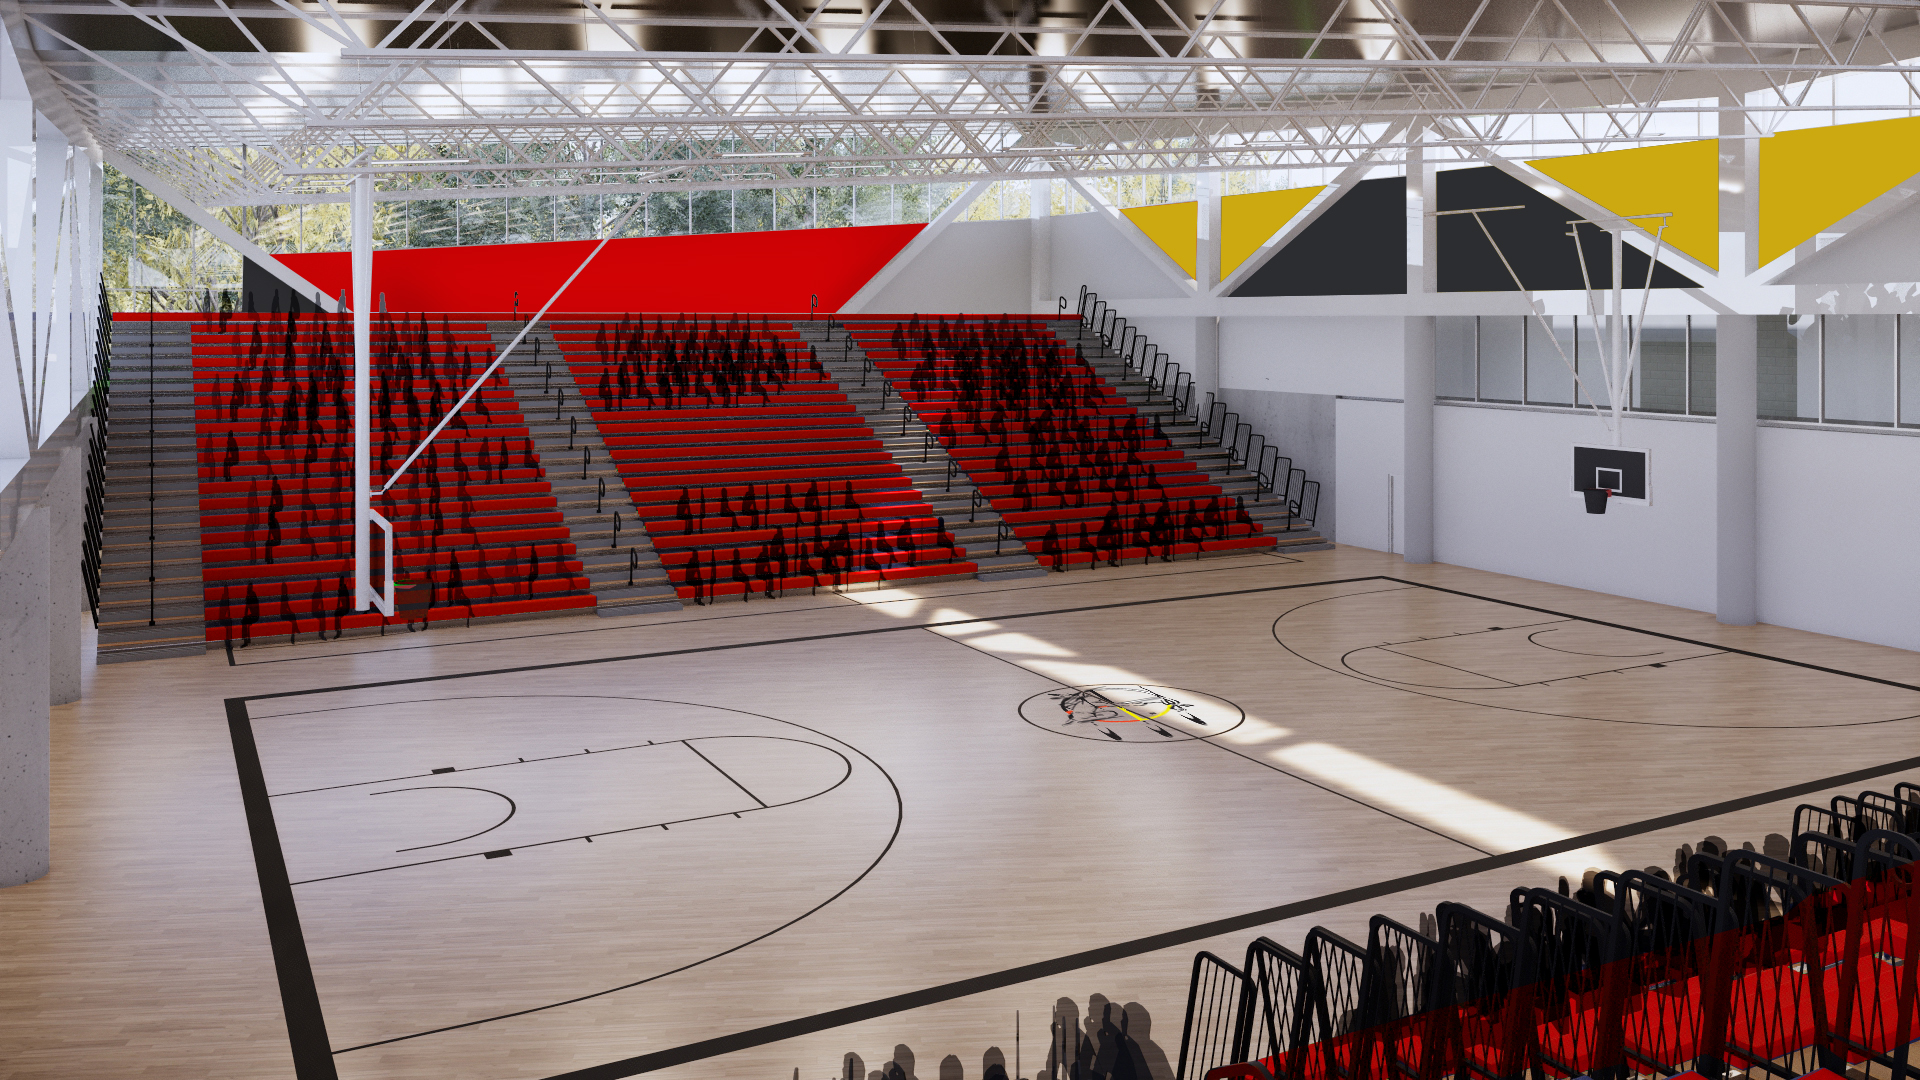 Gym Bleachers Out-rendered.jpg